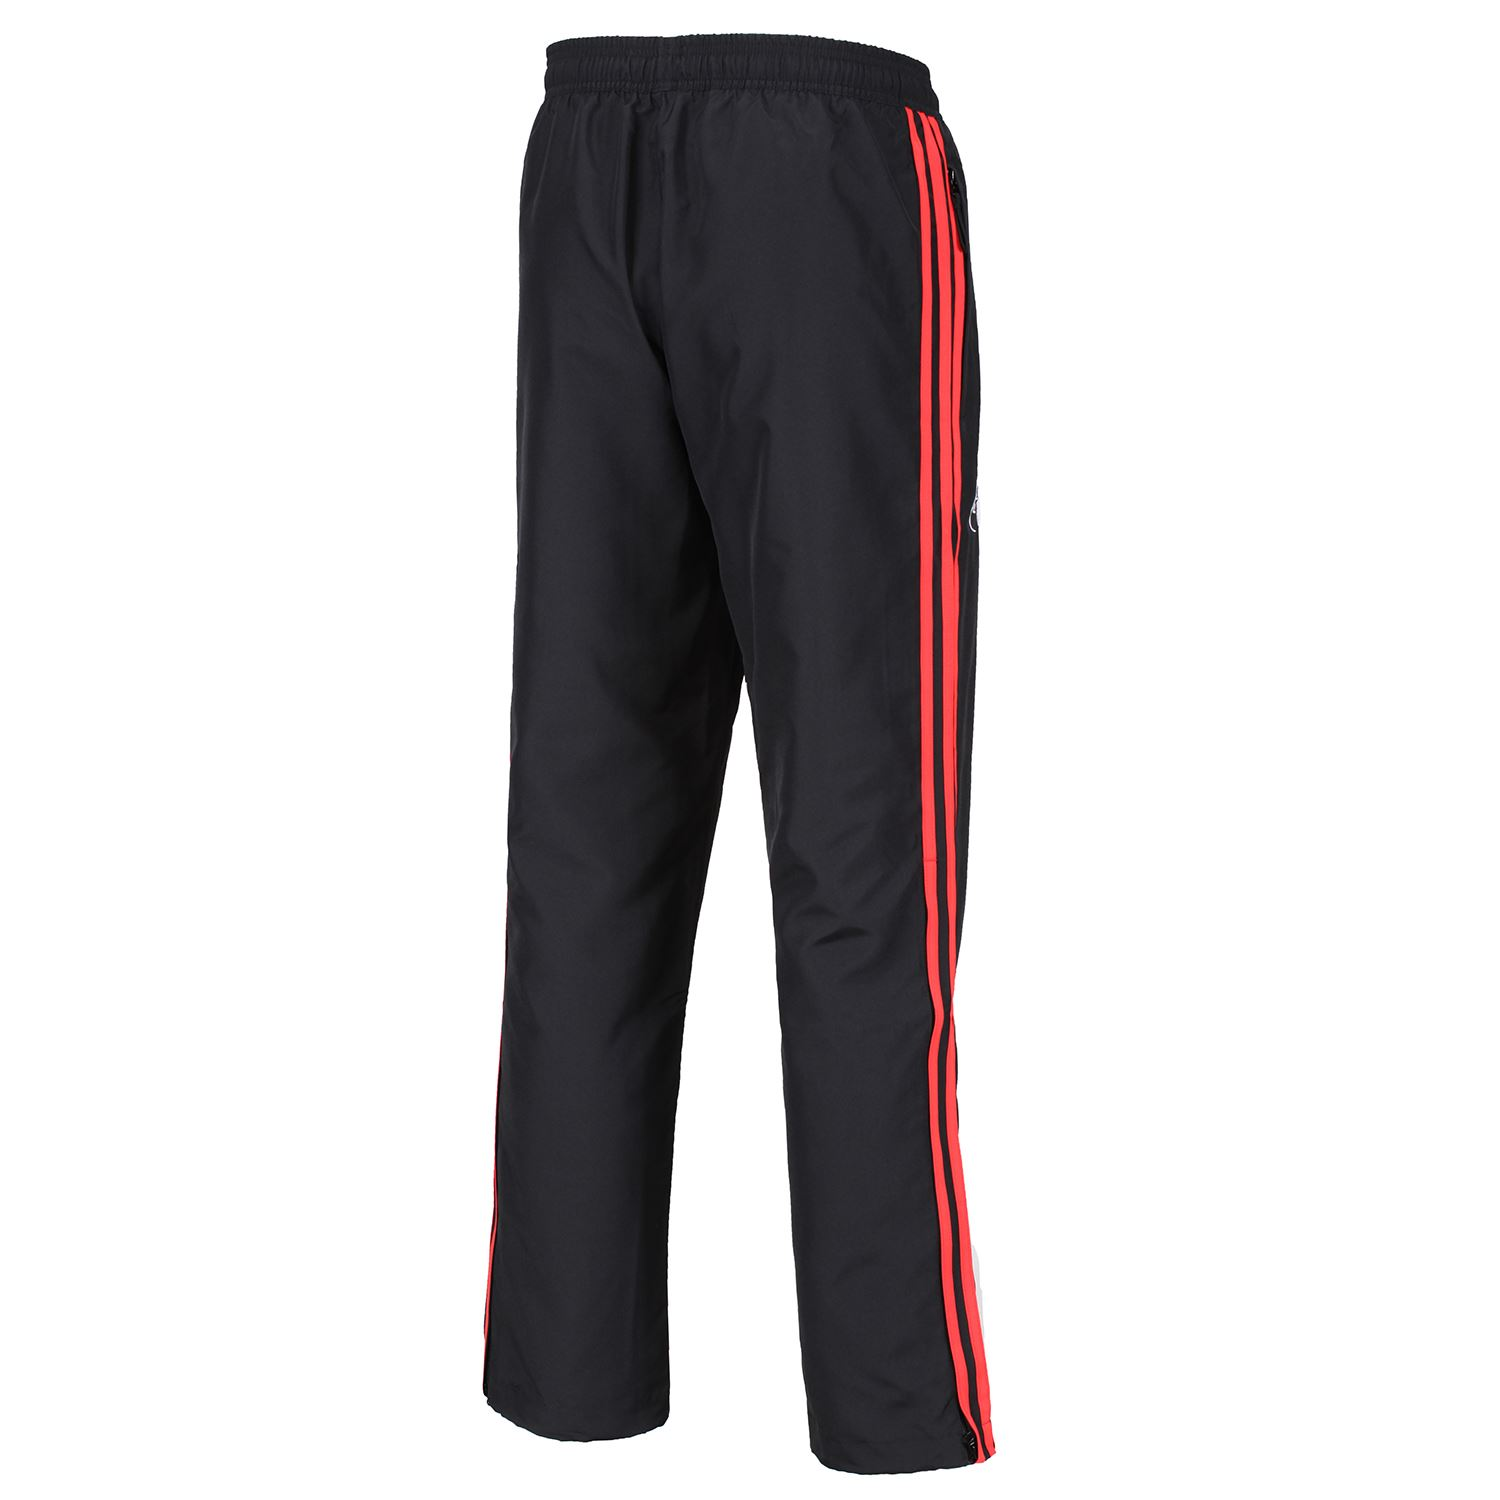 M L XL BOTTOMS JOGGERS Irlande PRO 14 MUNSTER RUGBY TRACK Pantalons homme  ADIDAS dbf2db33add